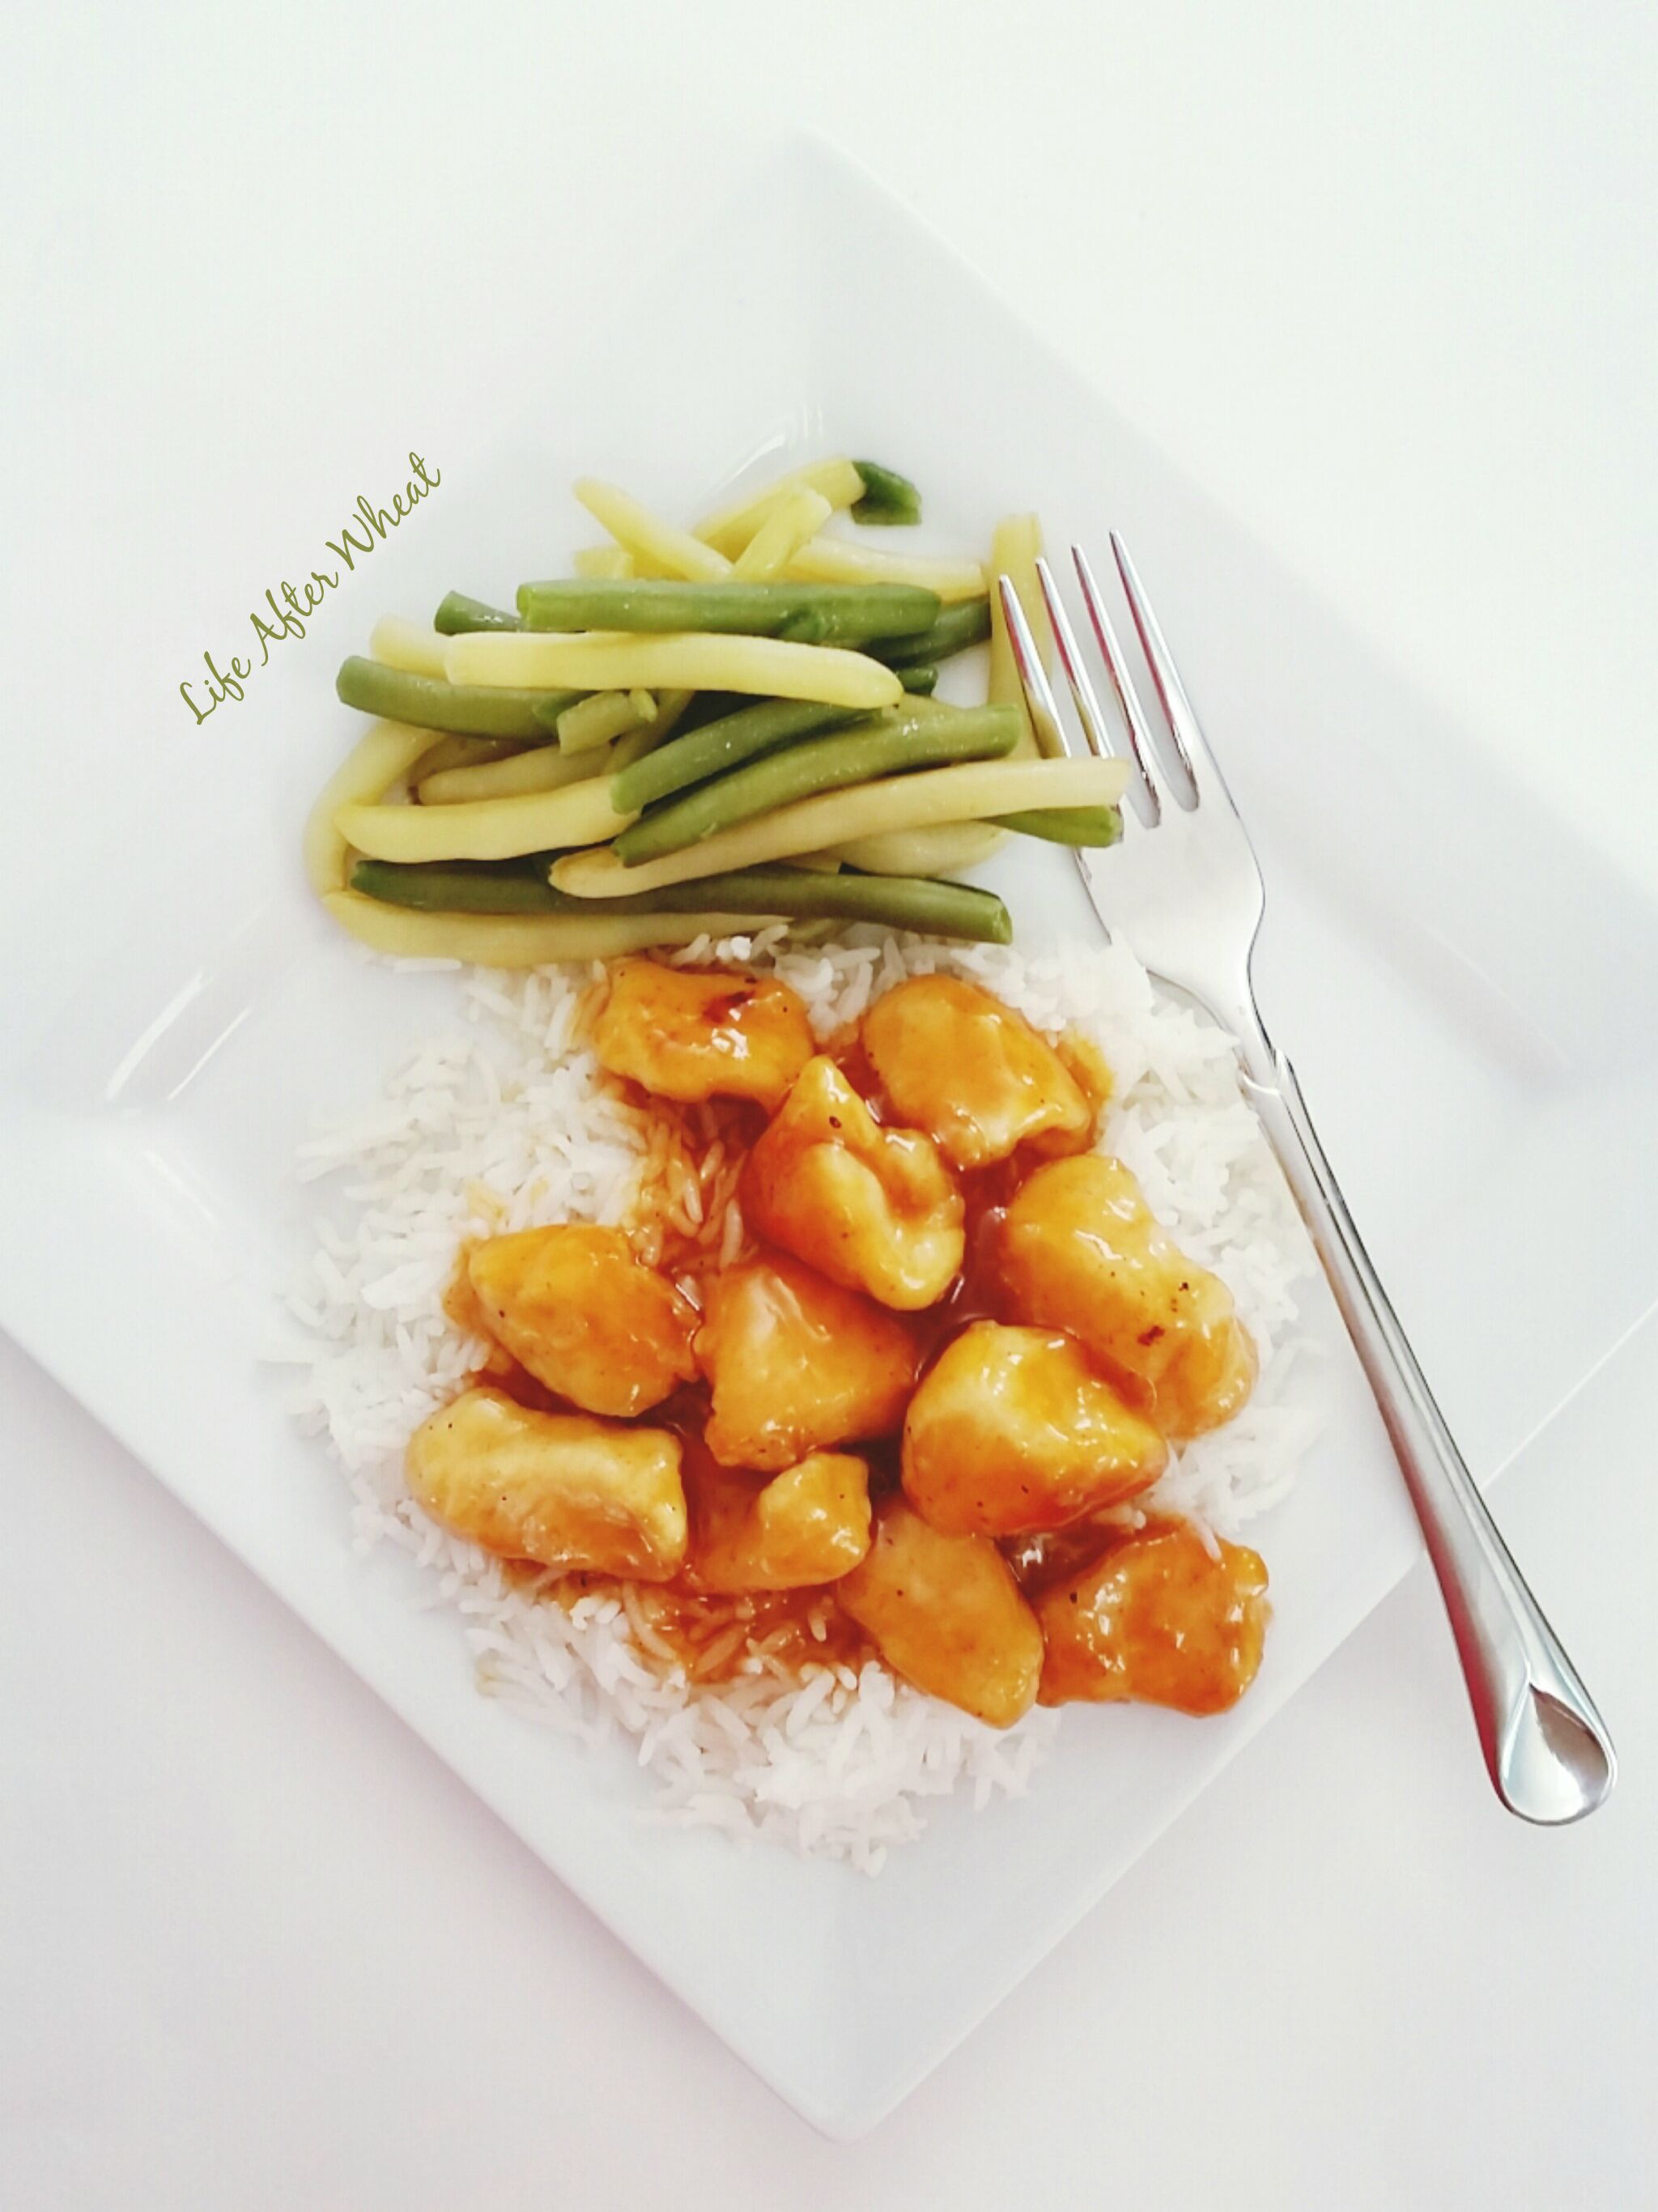 A quick and easy, one pan, gluten free sweet and sour that's better than takeout!